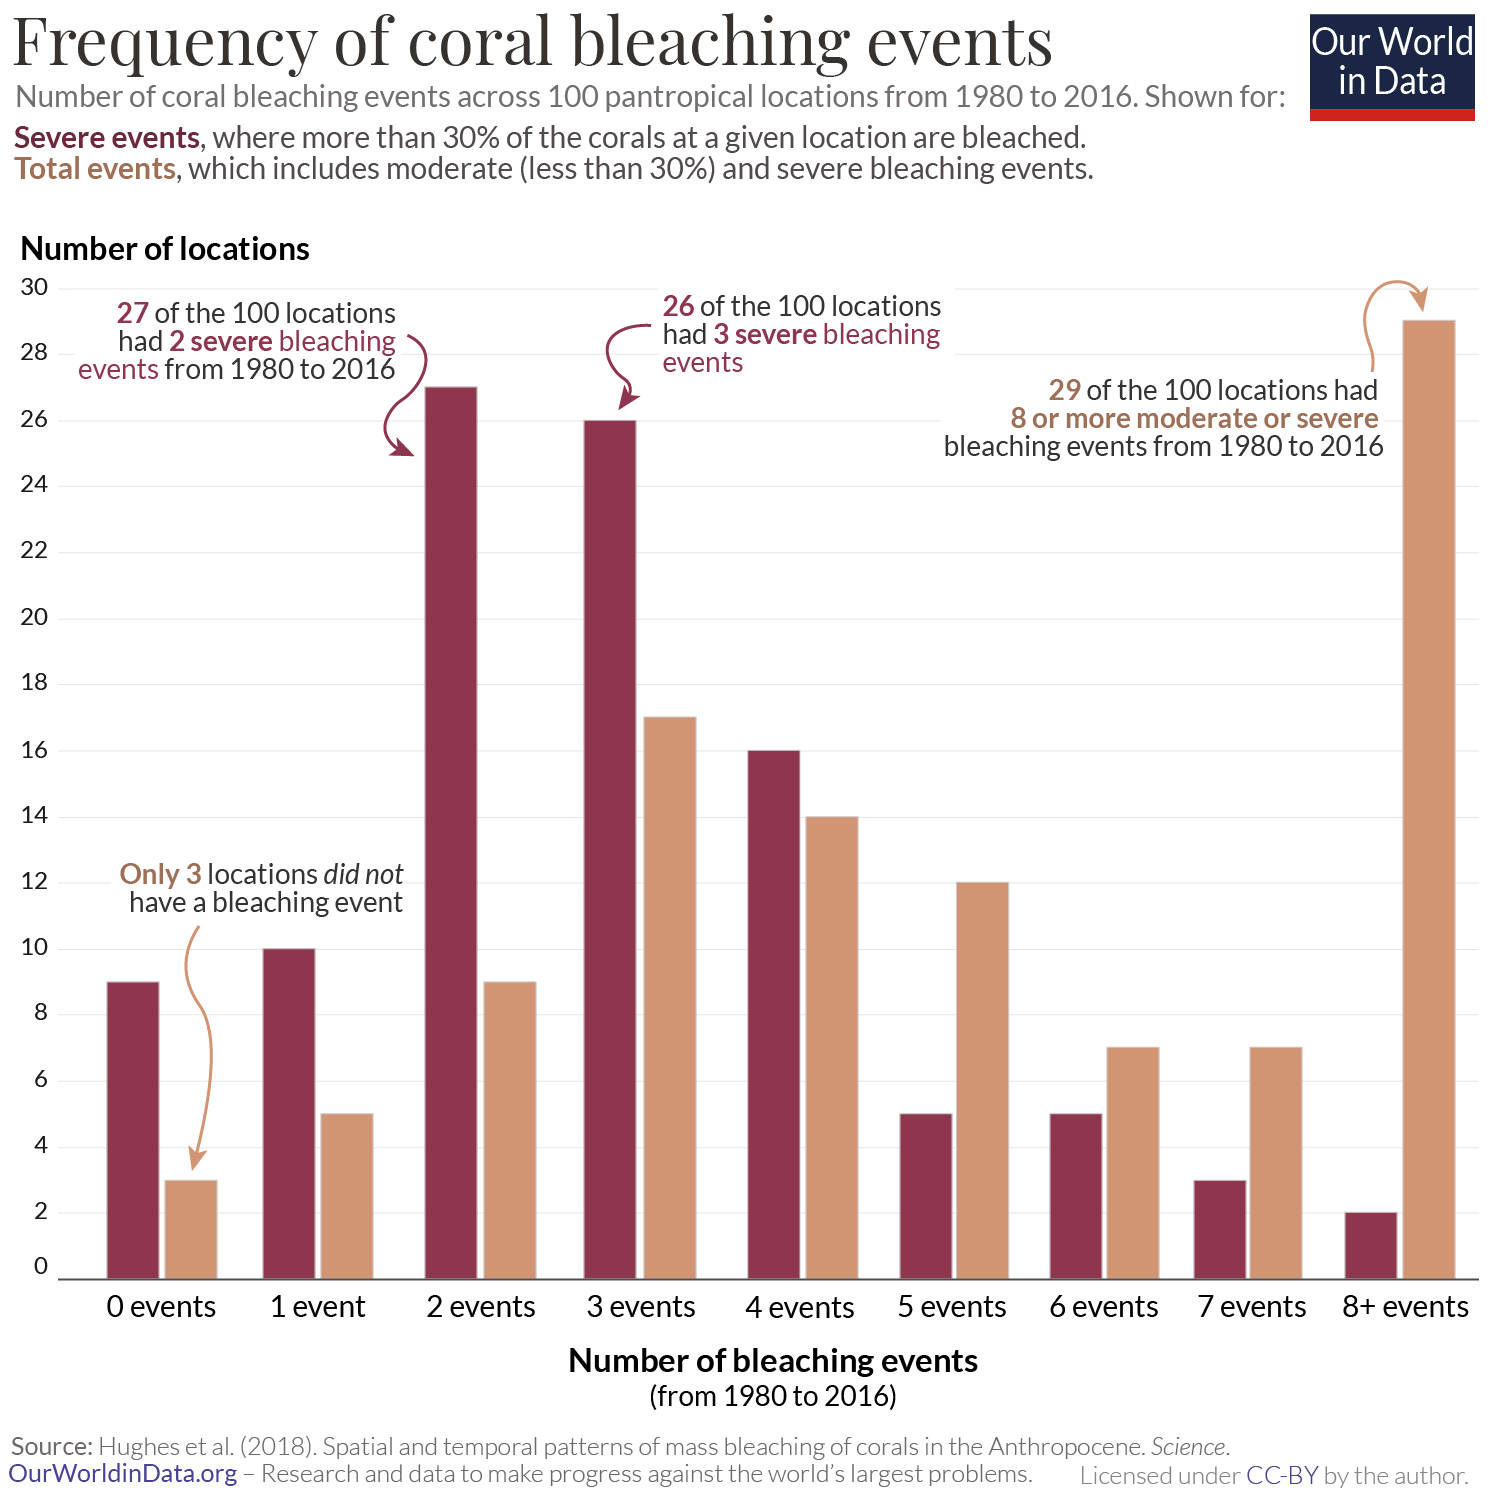 Frequency of coral bleaching events